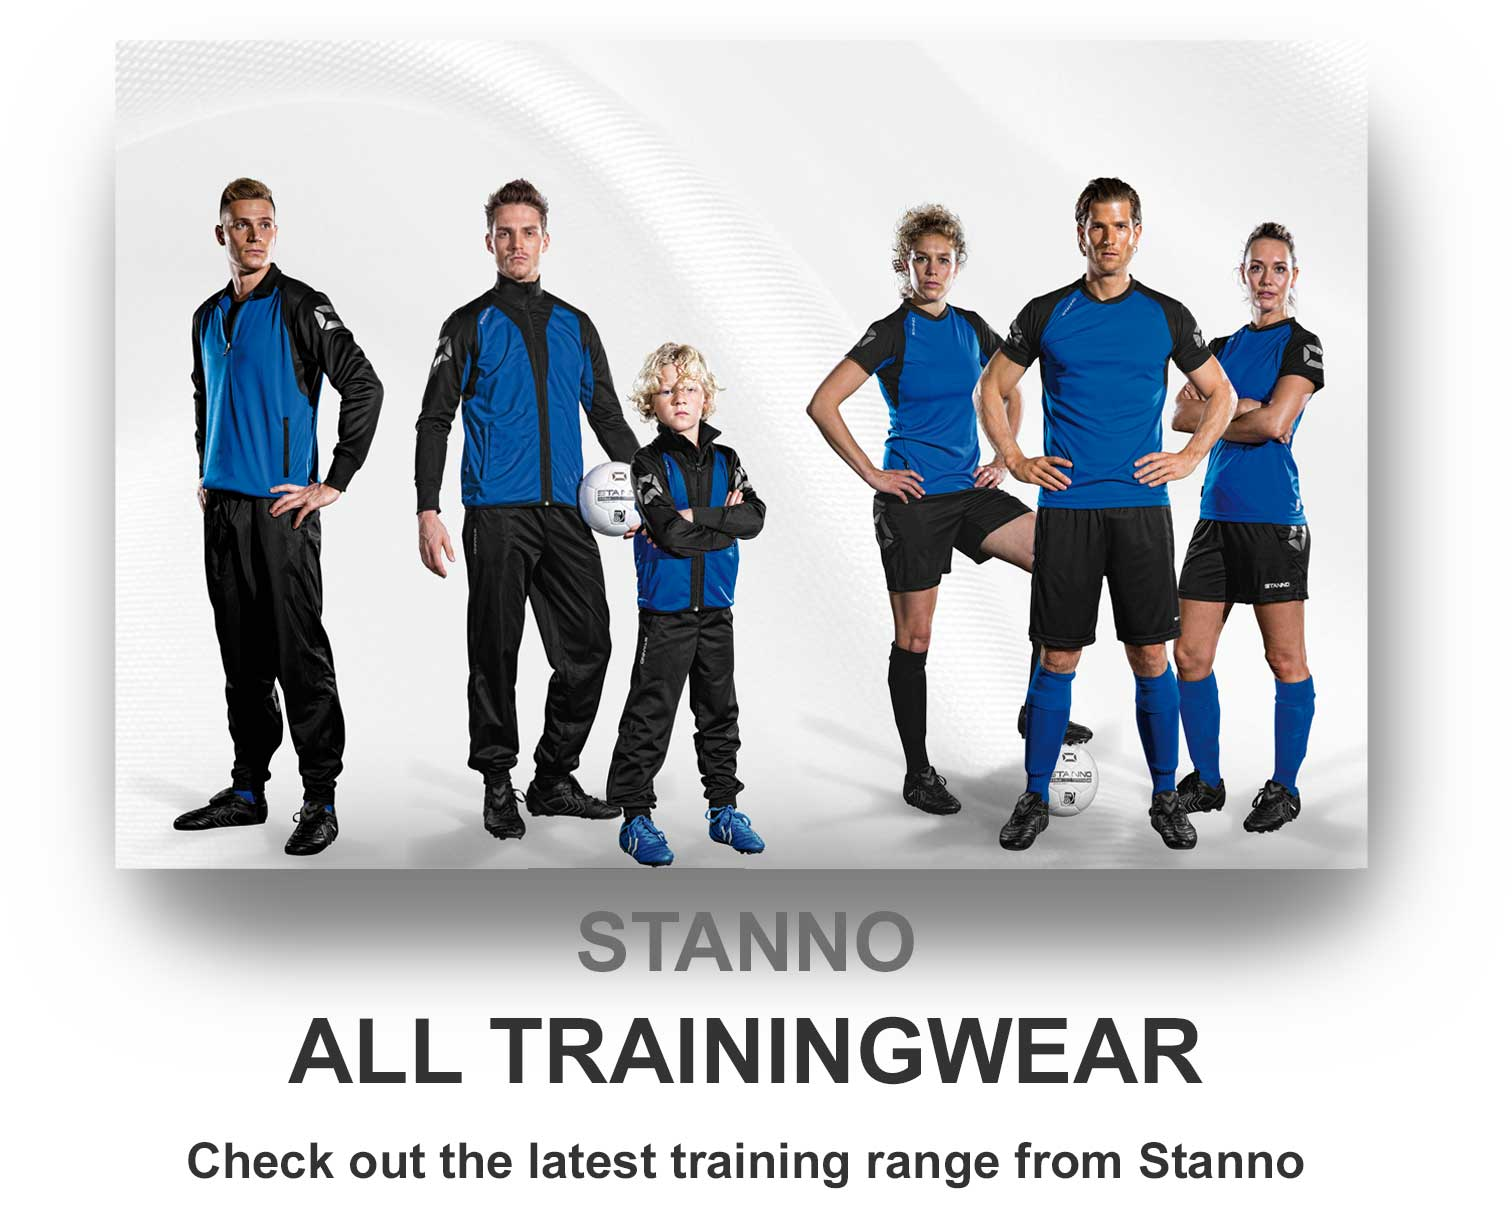 stanno-all-trainingwear.jpg